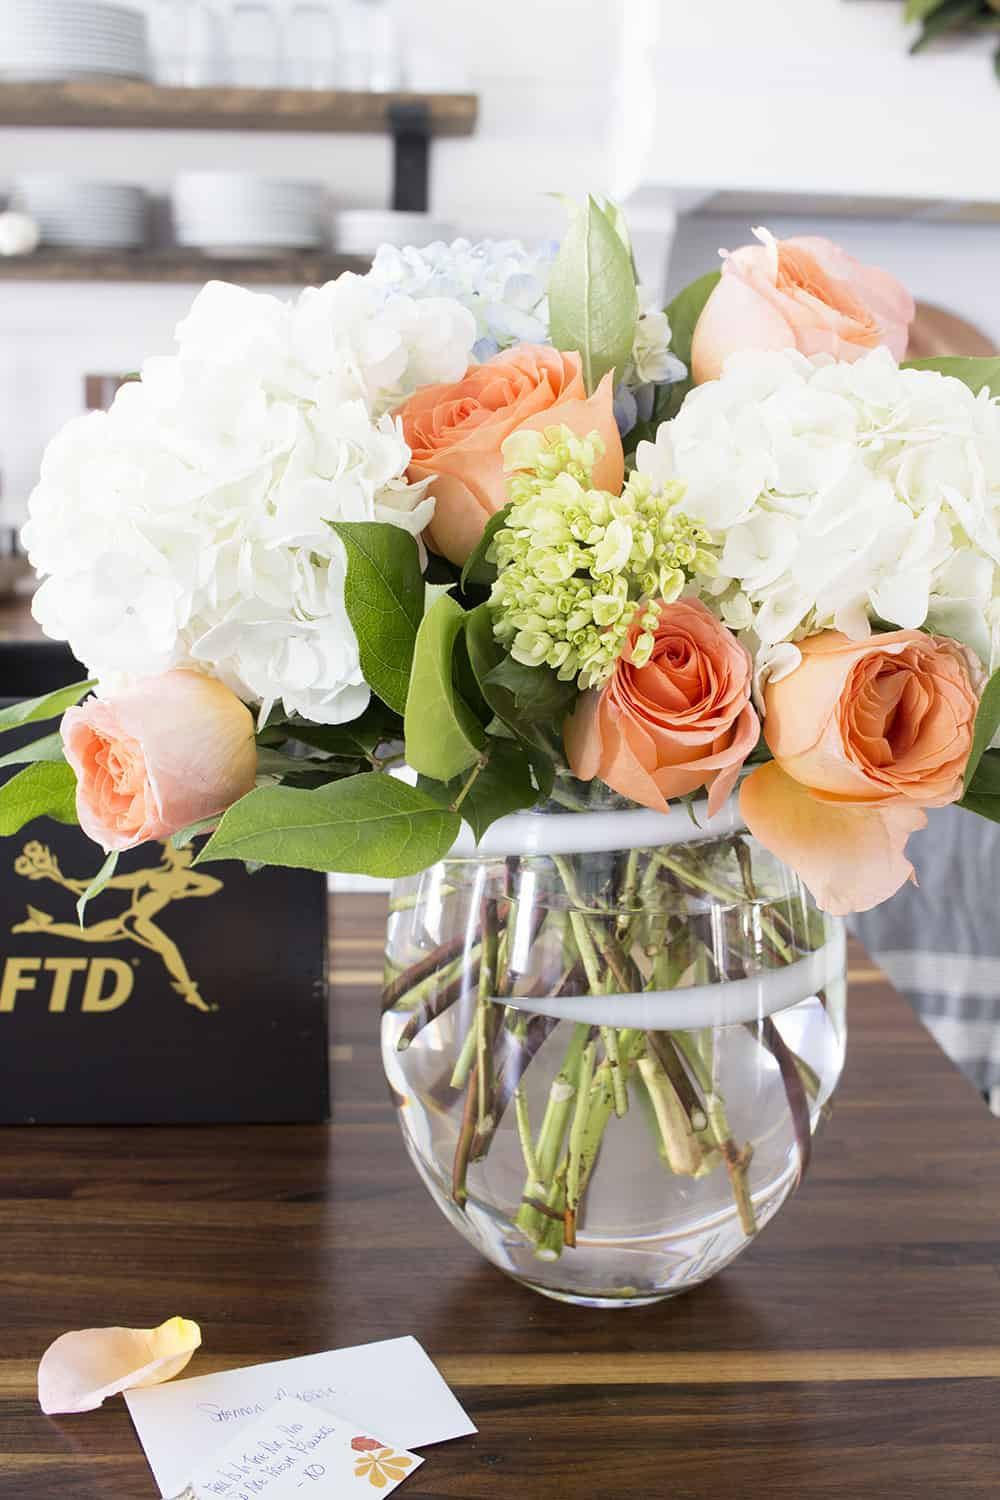 FTD Always Smile Luxury Bouquet